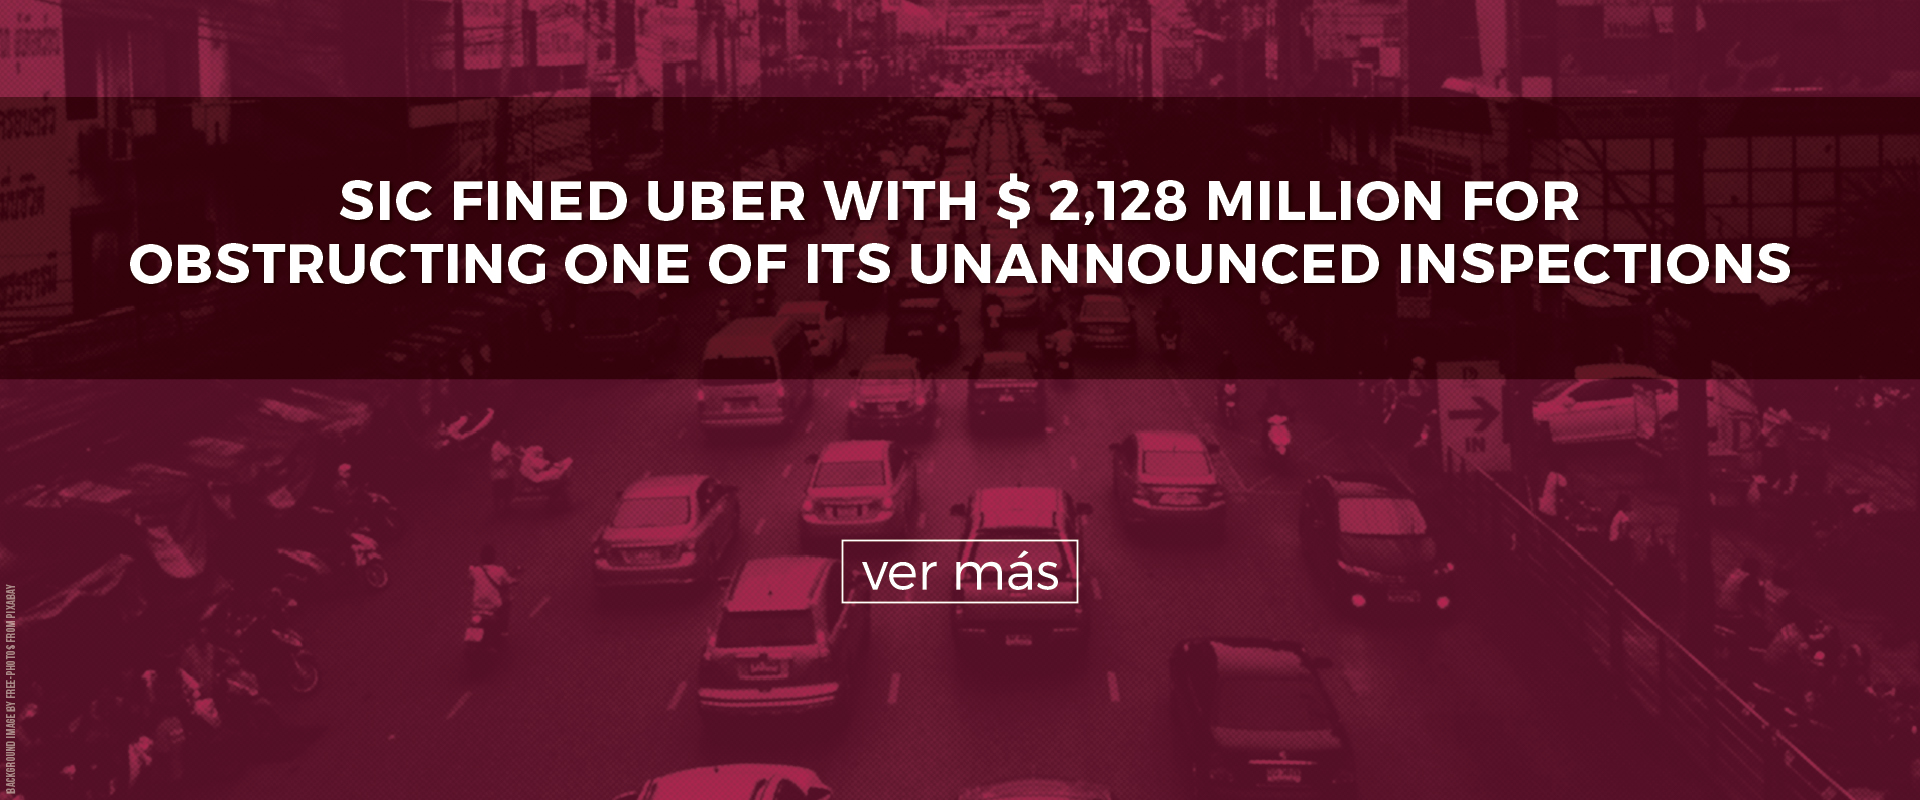 SIC fined UBER with $ 2,128 million for obstructing one of its unannounced inspections